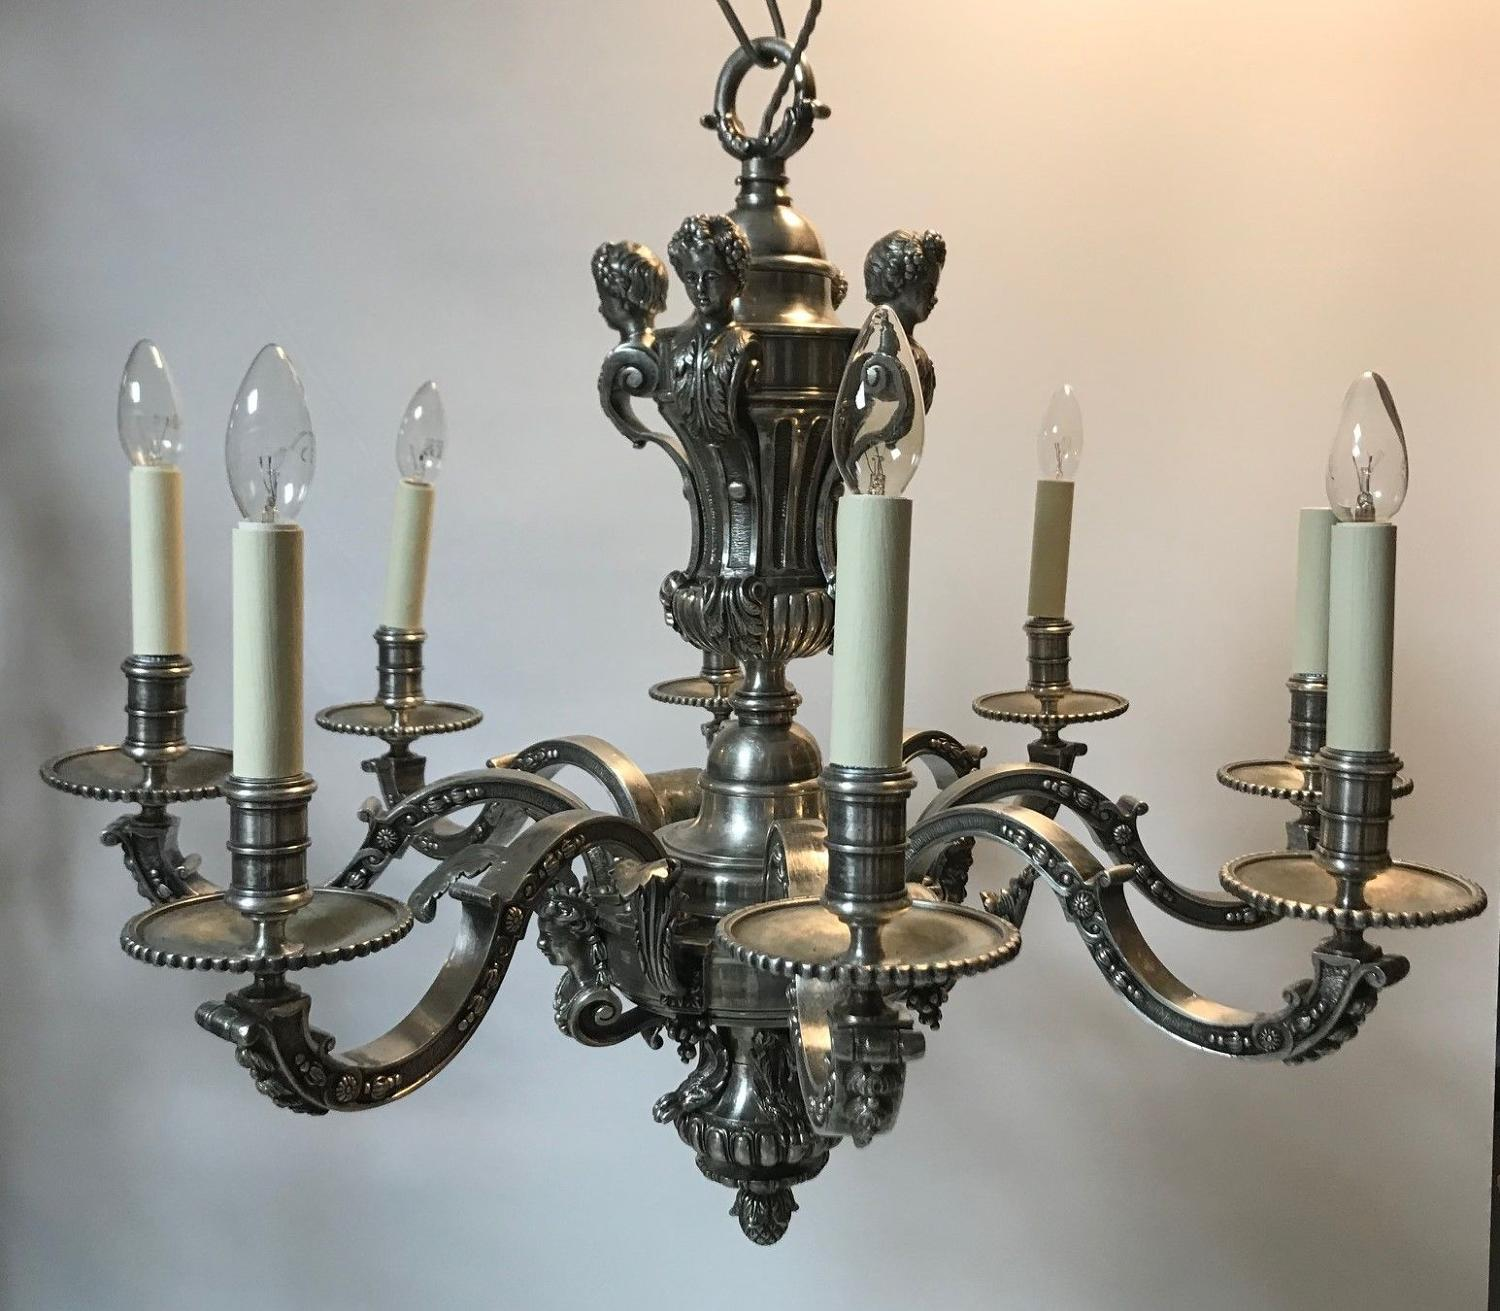 A pair of 19th century chandeliers